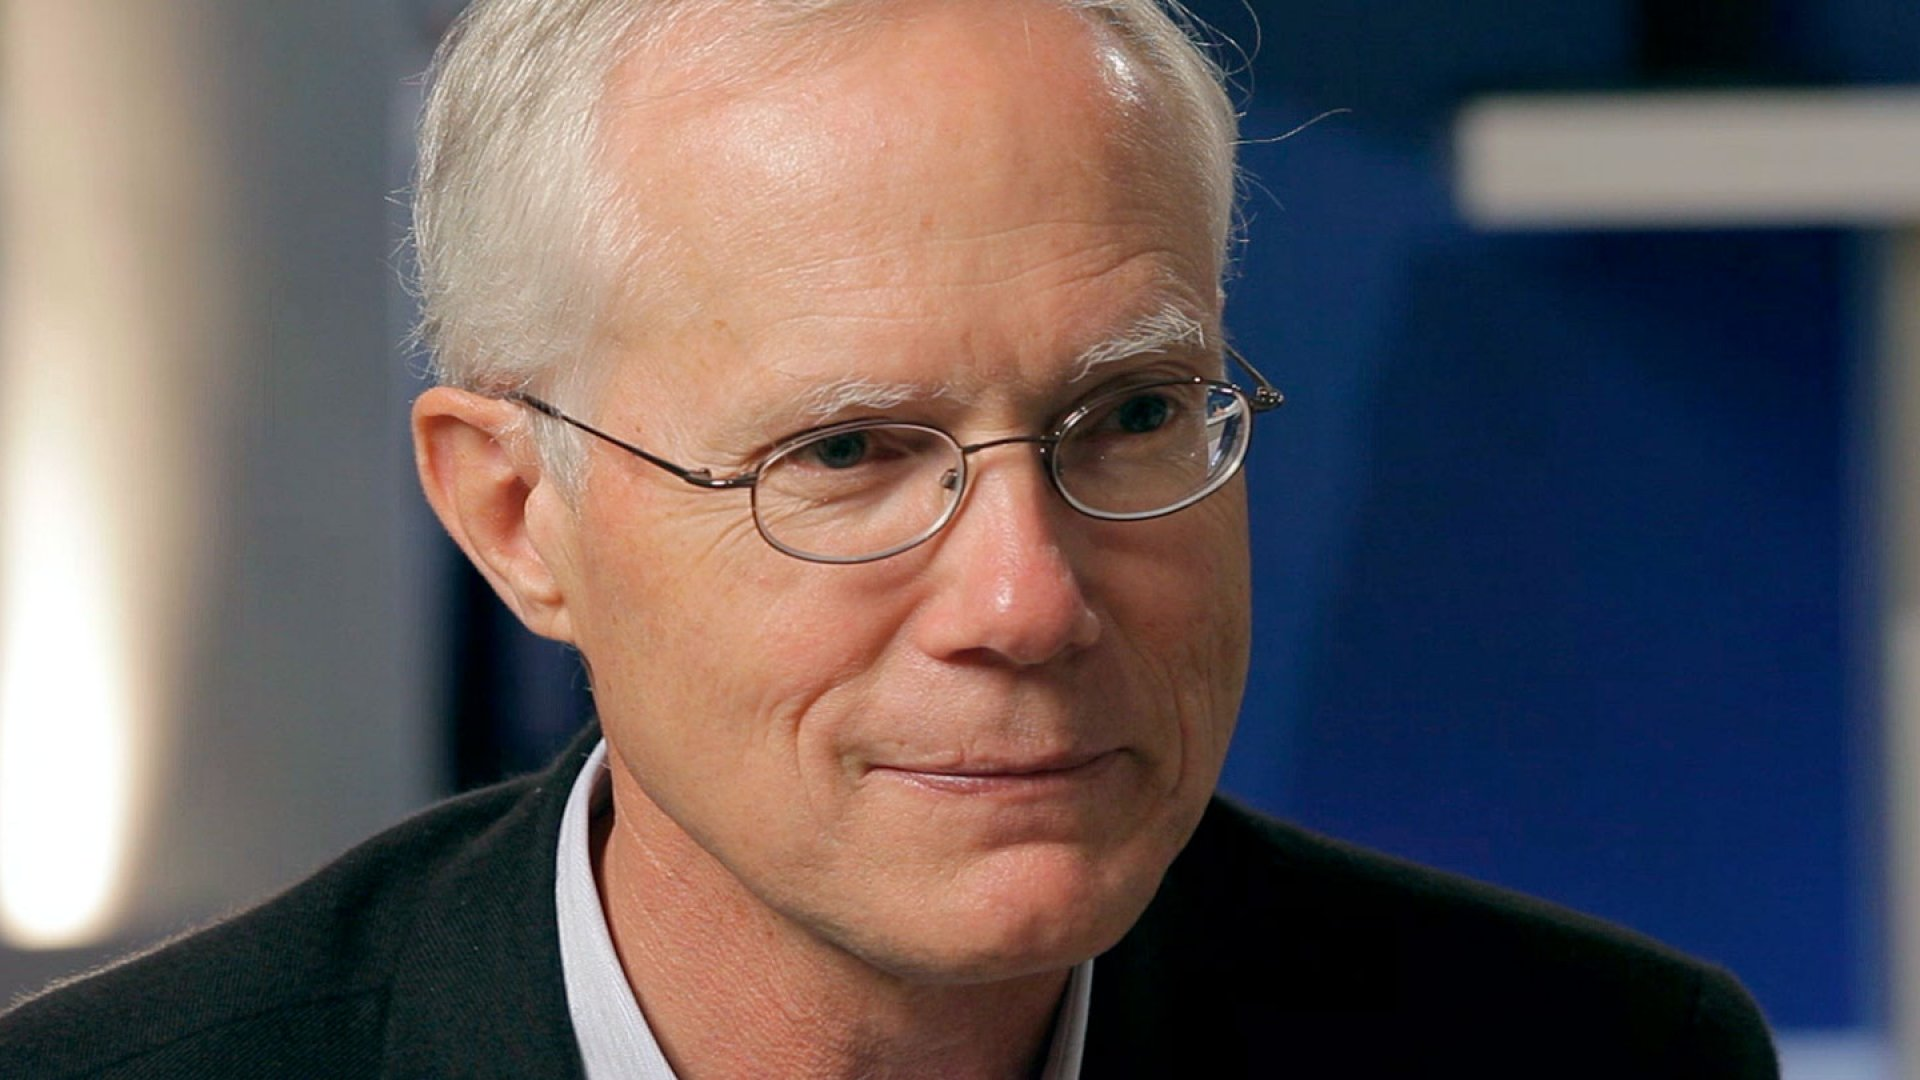 Intuit's Scott Cook: The Requirements of Leadership Have Changed